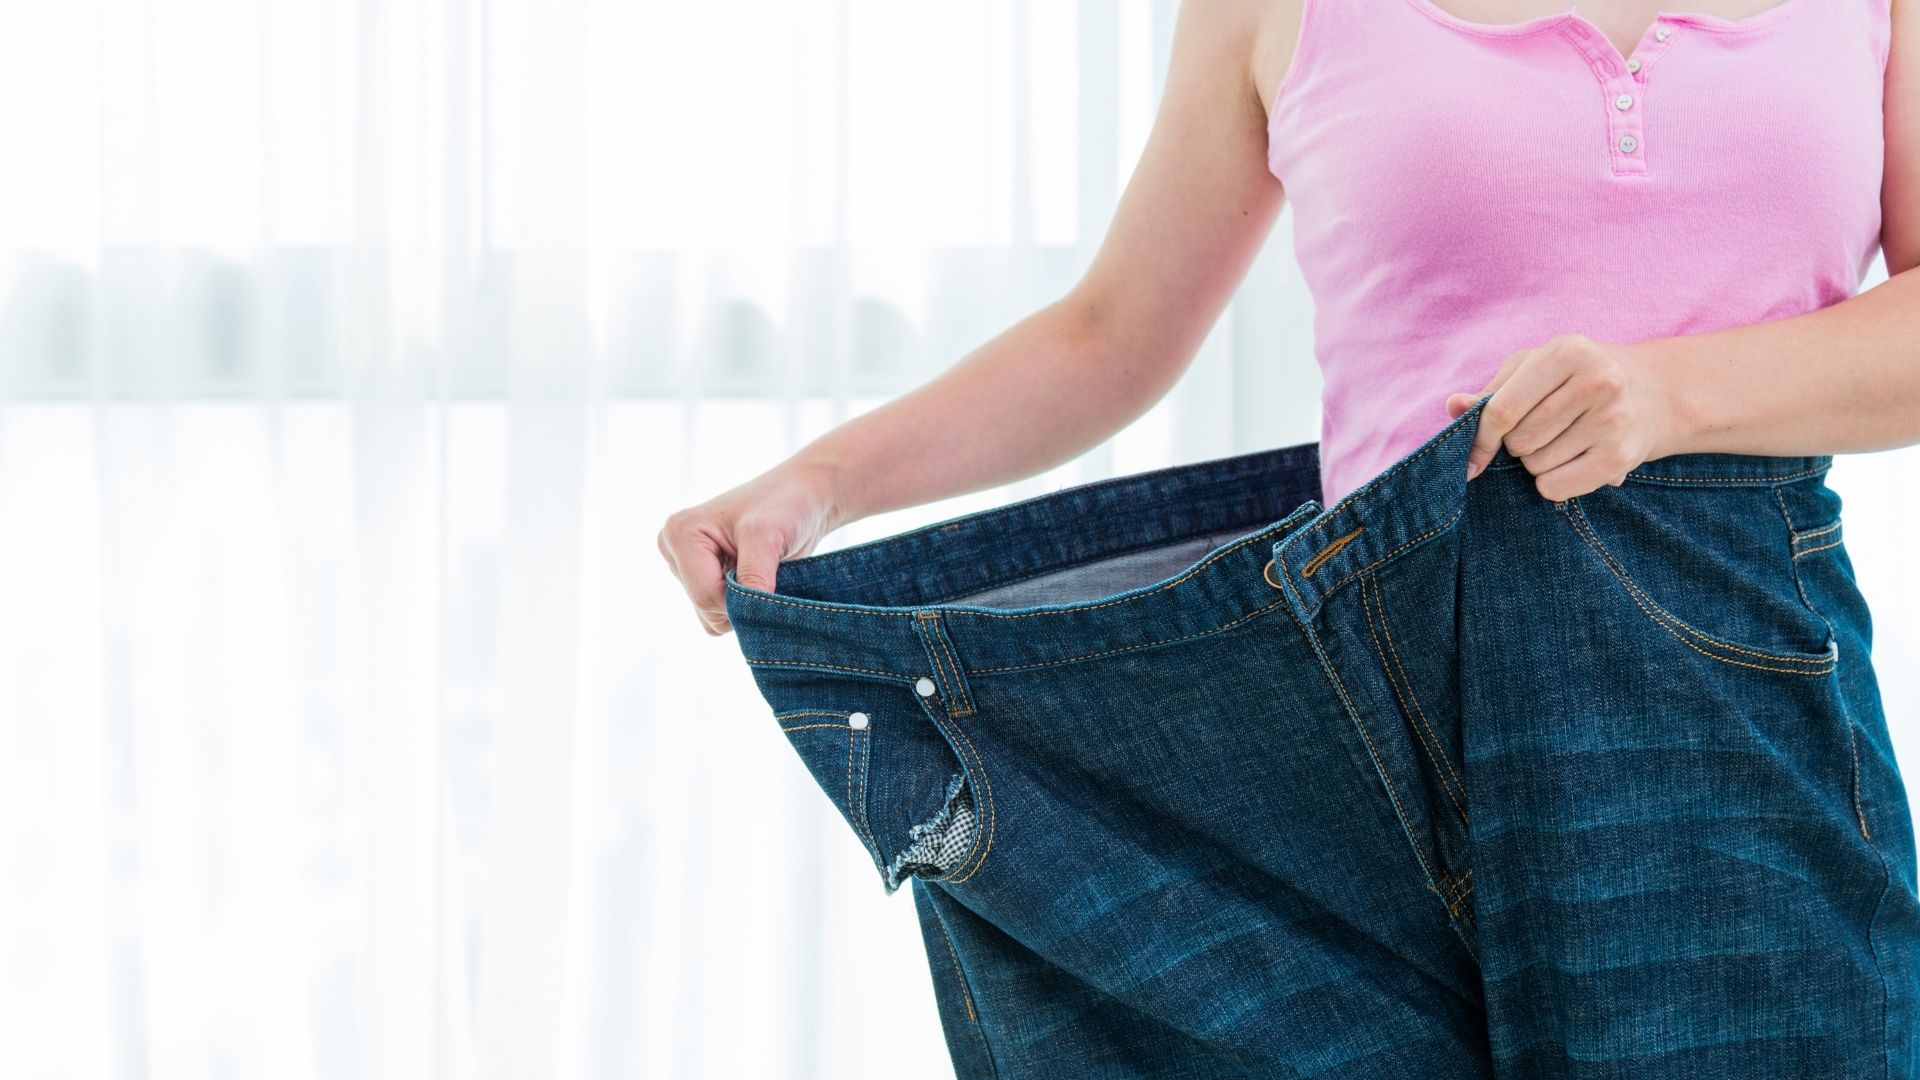 lose weight1 - Losing weight need not be complicated and cost lots of money